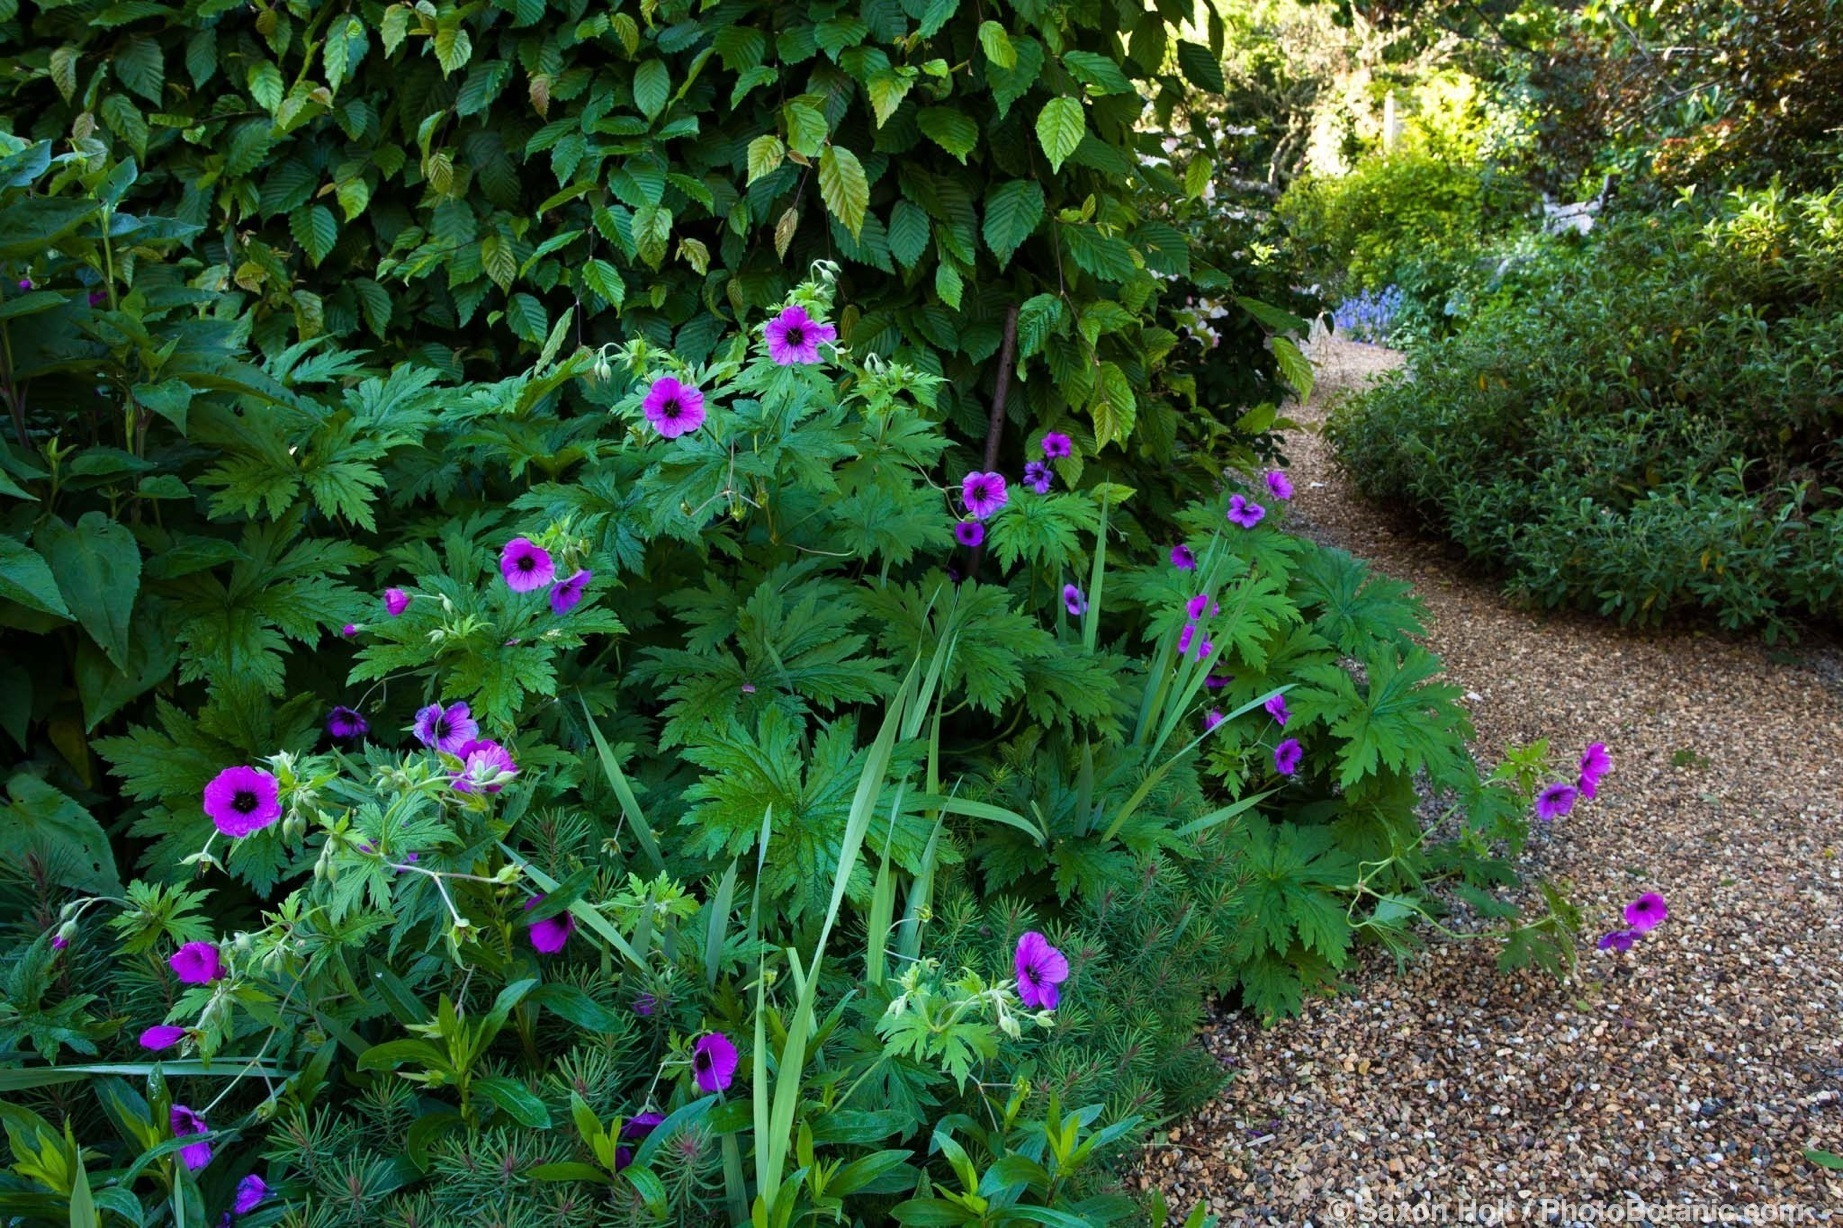 Geranium psilostemma with large foliage leaves bt gravel path in Gary Ratway garden